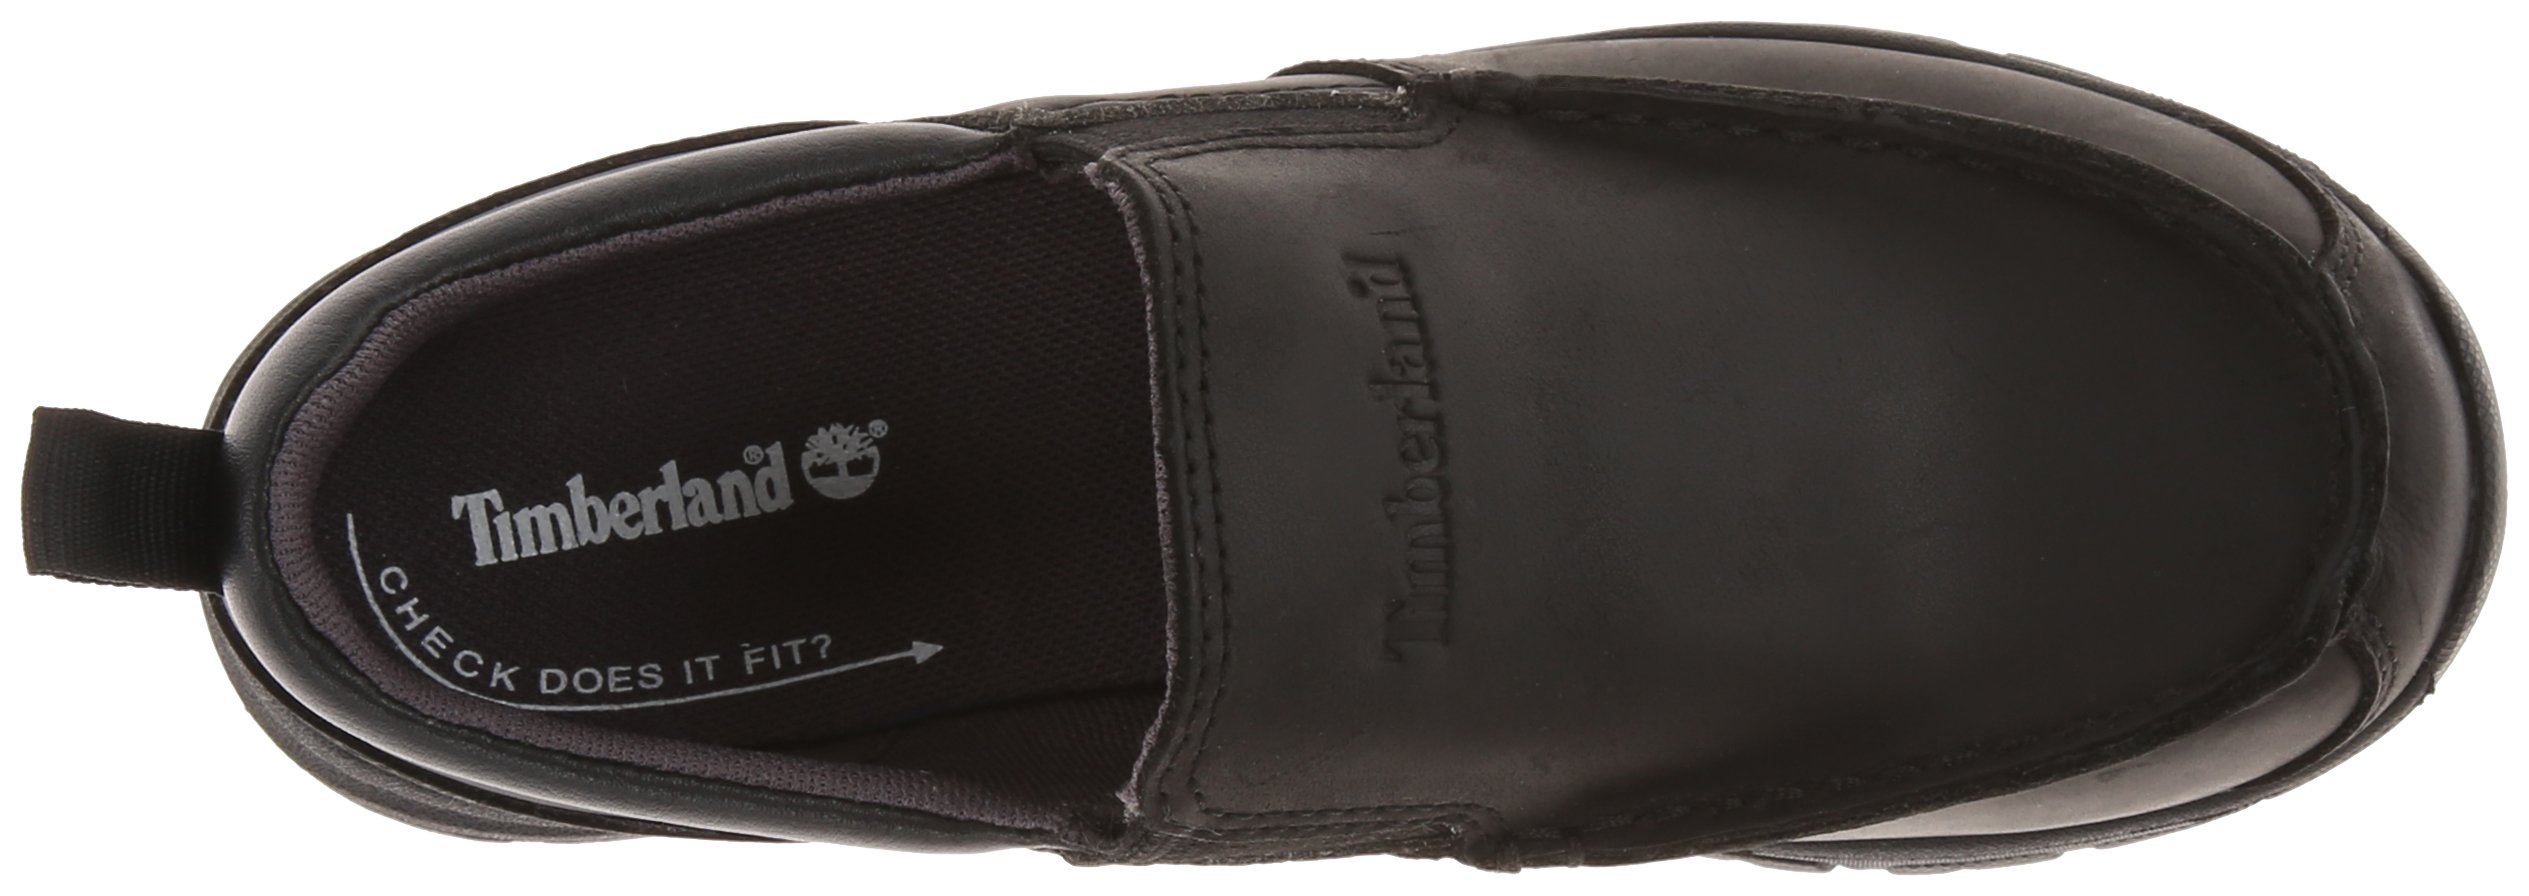 Timberland Discovery Pass Moc Toe Moc Toe Slip-On (Toddler/Little Kid/Big Kid),Black,9.5 M US Toddler by Timberland (Image #8)